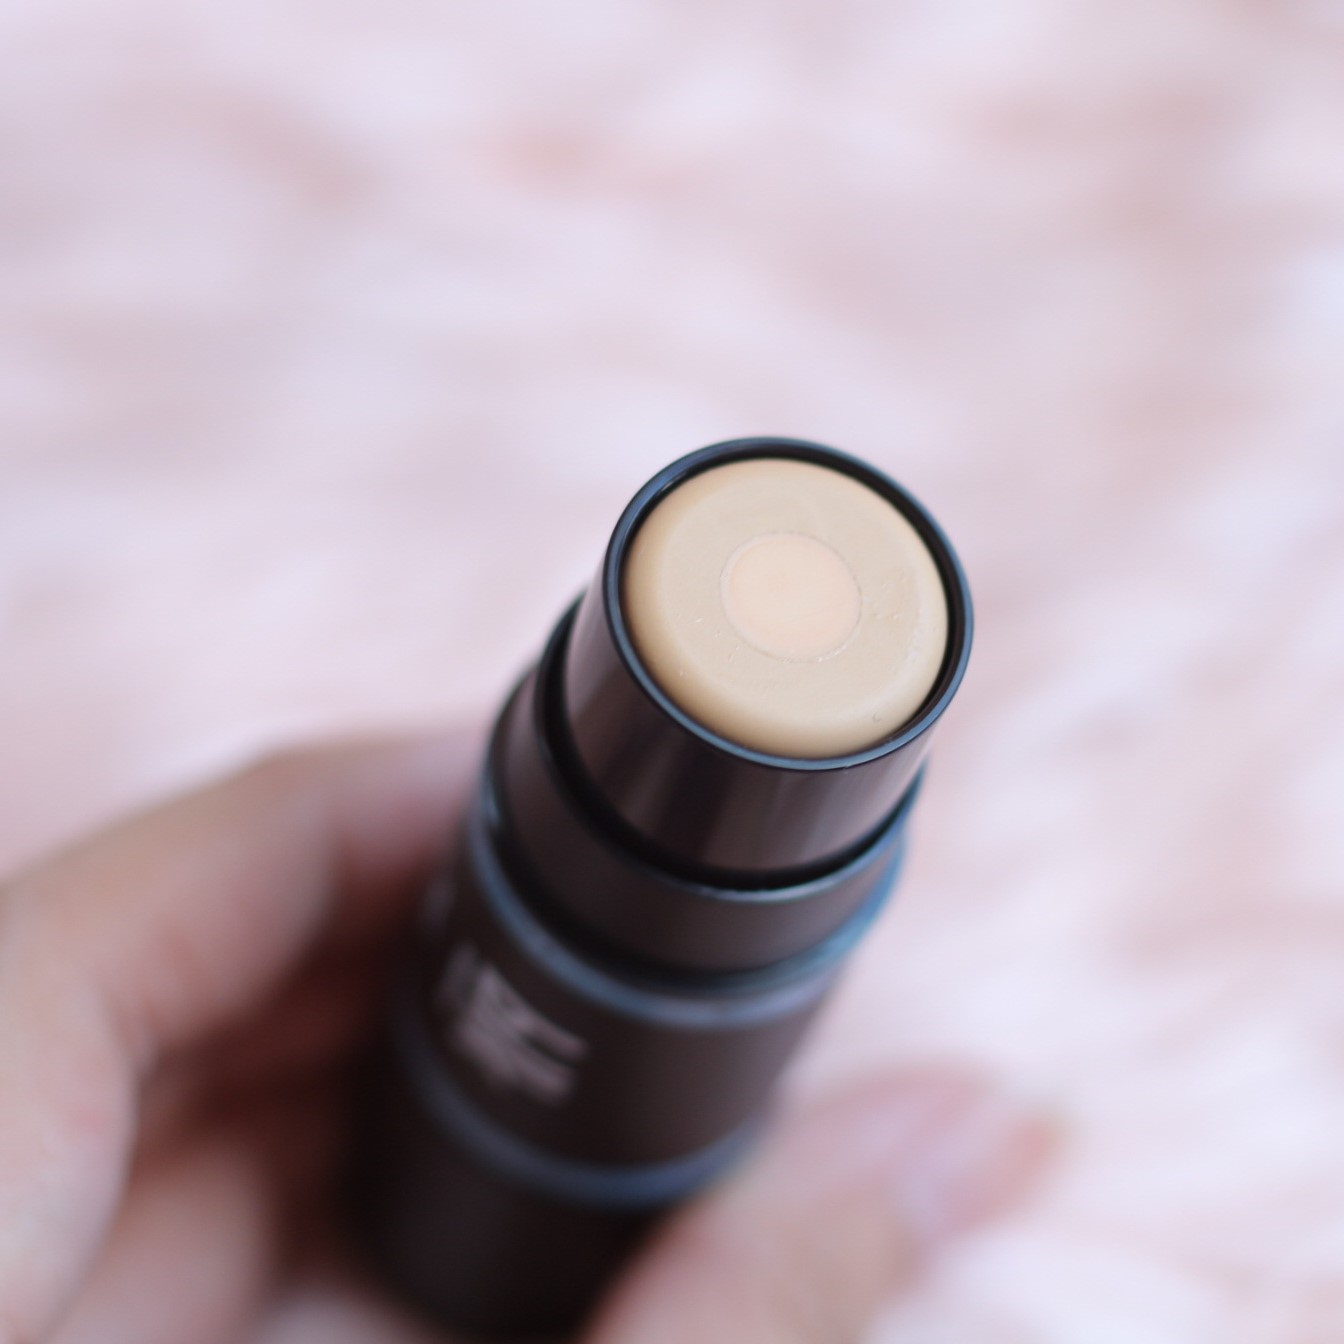 BLK Cosmetics BB CC Cream Stick Foundation Review Swatch Light Beige